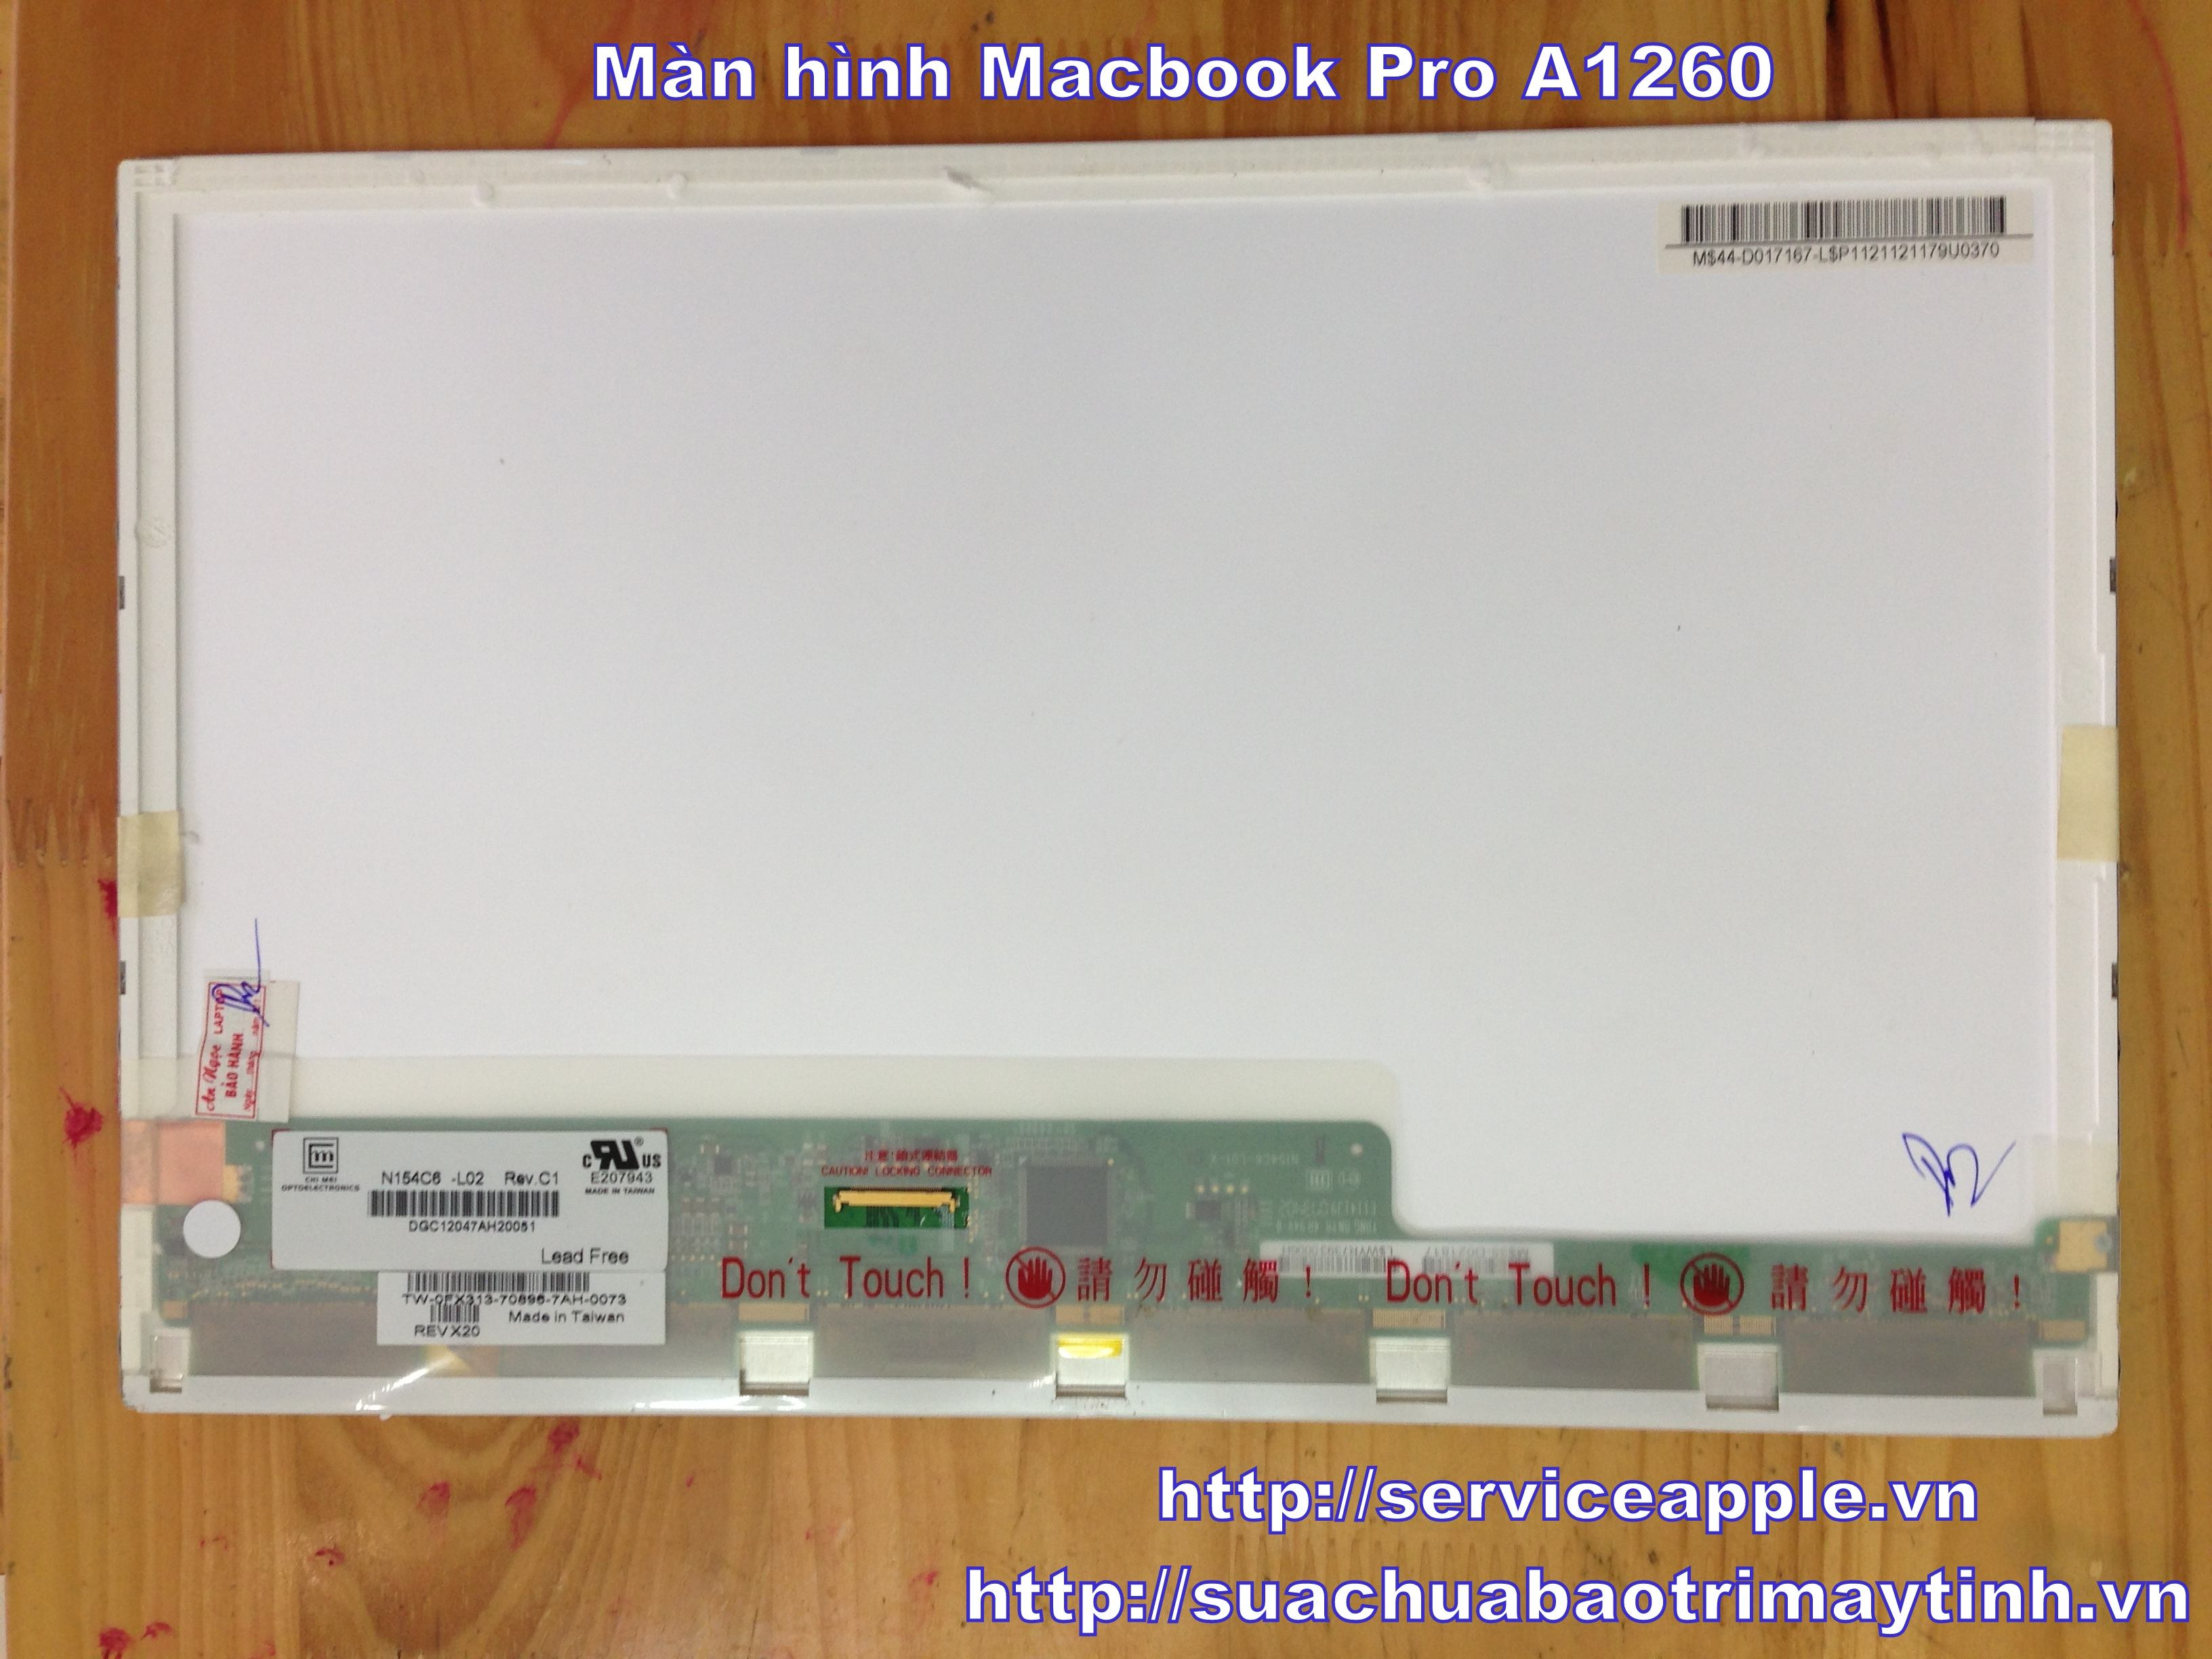 Man hinh Macbook Pro A1260.JPG